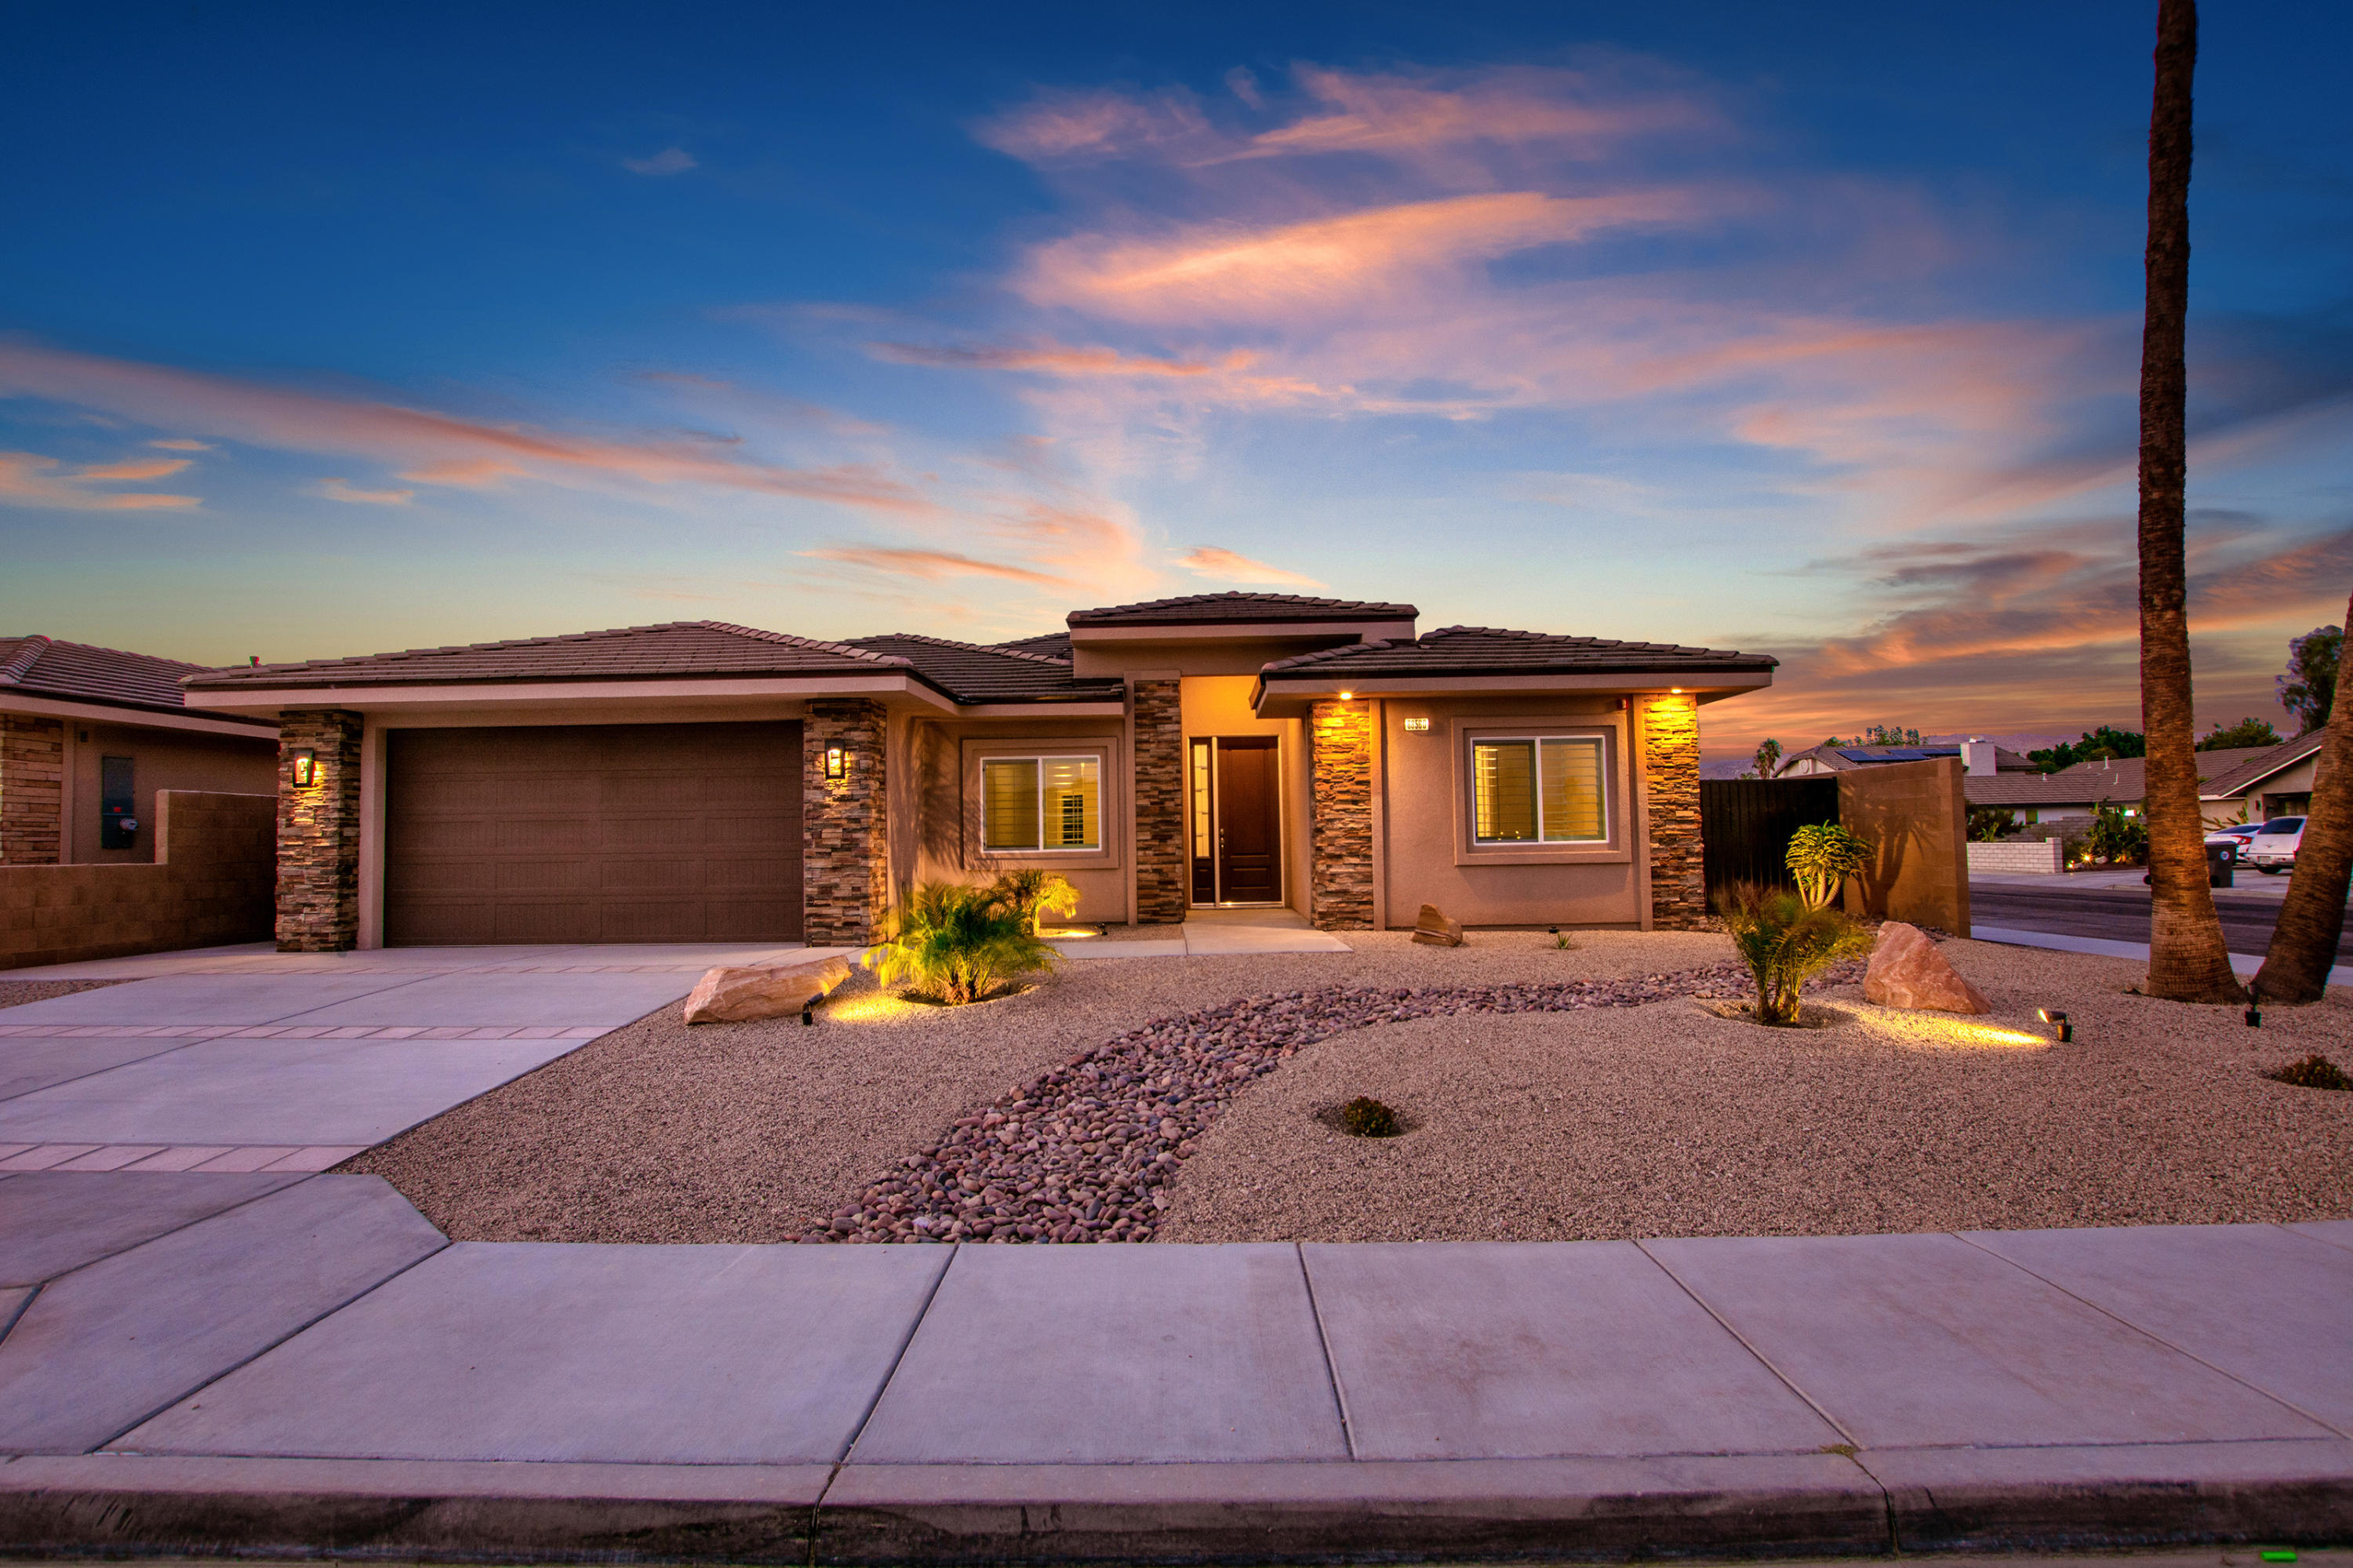 Your looking for a new Home? Look no more, this New Home has it all! 4 Bedrooms, 3 Baths, 2700 S.F., Pool & Spa with low maintenance front and back landscaping with lights. 2 Car Finished Garage (530sf garage, and insulated, 10 ft ceilings and 8 foot garage doors). Covered Patio (Over 200 SF), Block Wall Fencing with Rod iron gates on both sides. House is Extremely Energy Efficient (R 60 insulation in the ceilings, and R 27 on the walls, 2x6 Construction. Dual A/c units. 10 Foot Ceilings in the great room areas and 9 Foot ceilings in the bedrooms with ceiling fans throughout. Quartz Counter tops in Kitchen & Bathrooms. Upgraded Stainless Steel Appliances (Refrigerator, Stove, Dishwasher, Micro-Hood). Kitchen includes Pantry. Fans in each Bedroom, Great Room and Breakfast Nook. Recessed Lighting, Two-Tone Paint. Ceramic Tile throughout, built above Energy Efficiency Standards. This home has many other upgrades and incredible Mountain views, it's a must see! This is the picture of the model home, colors may vary.